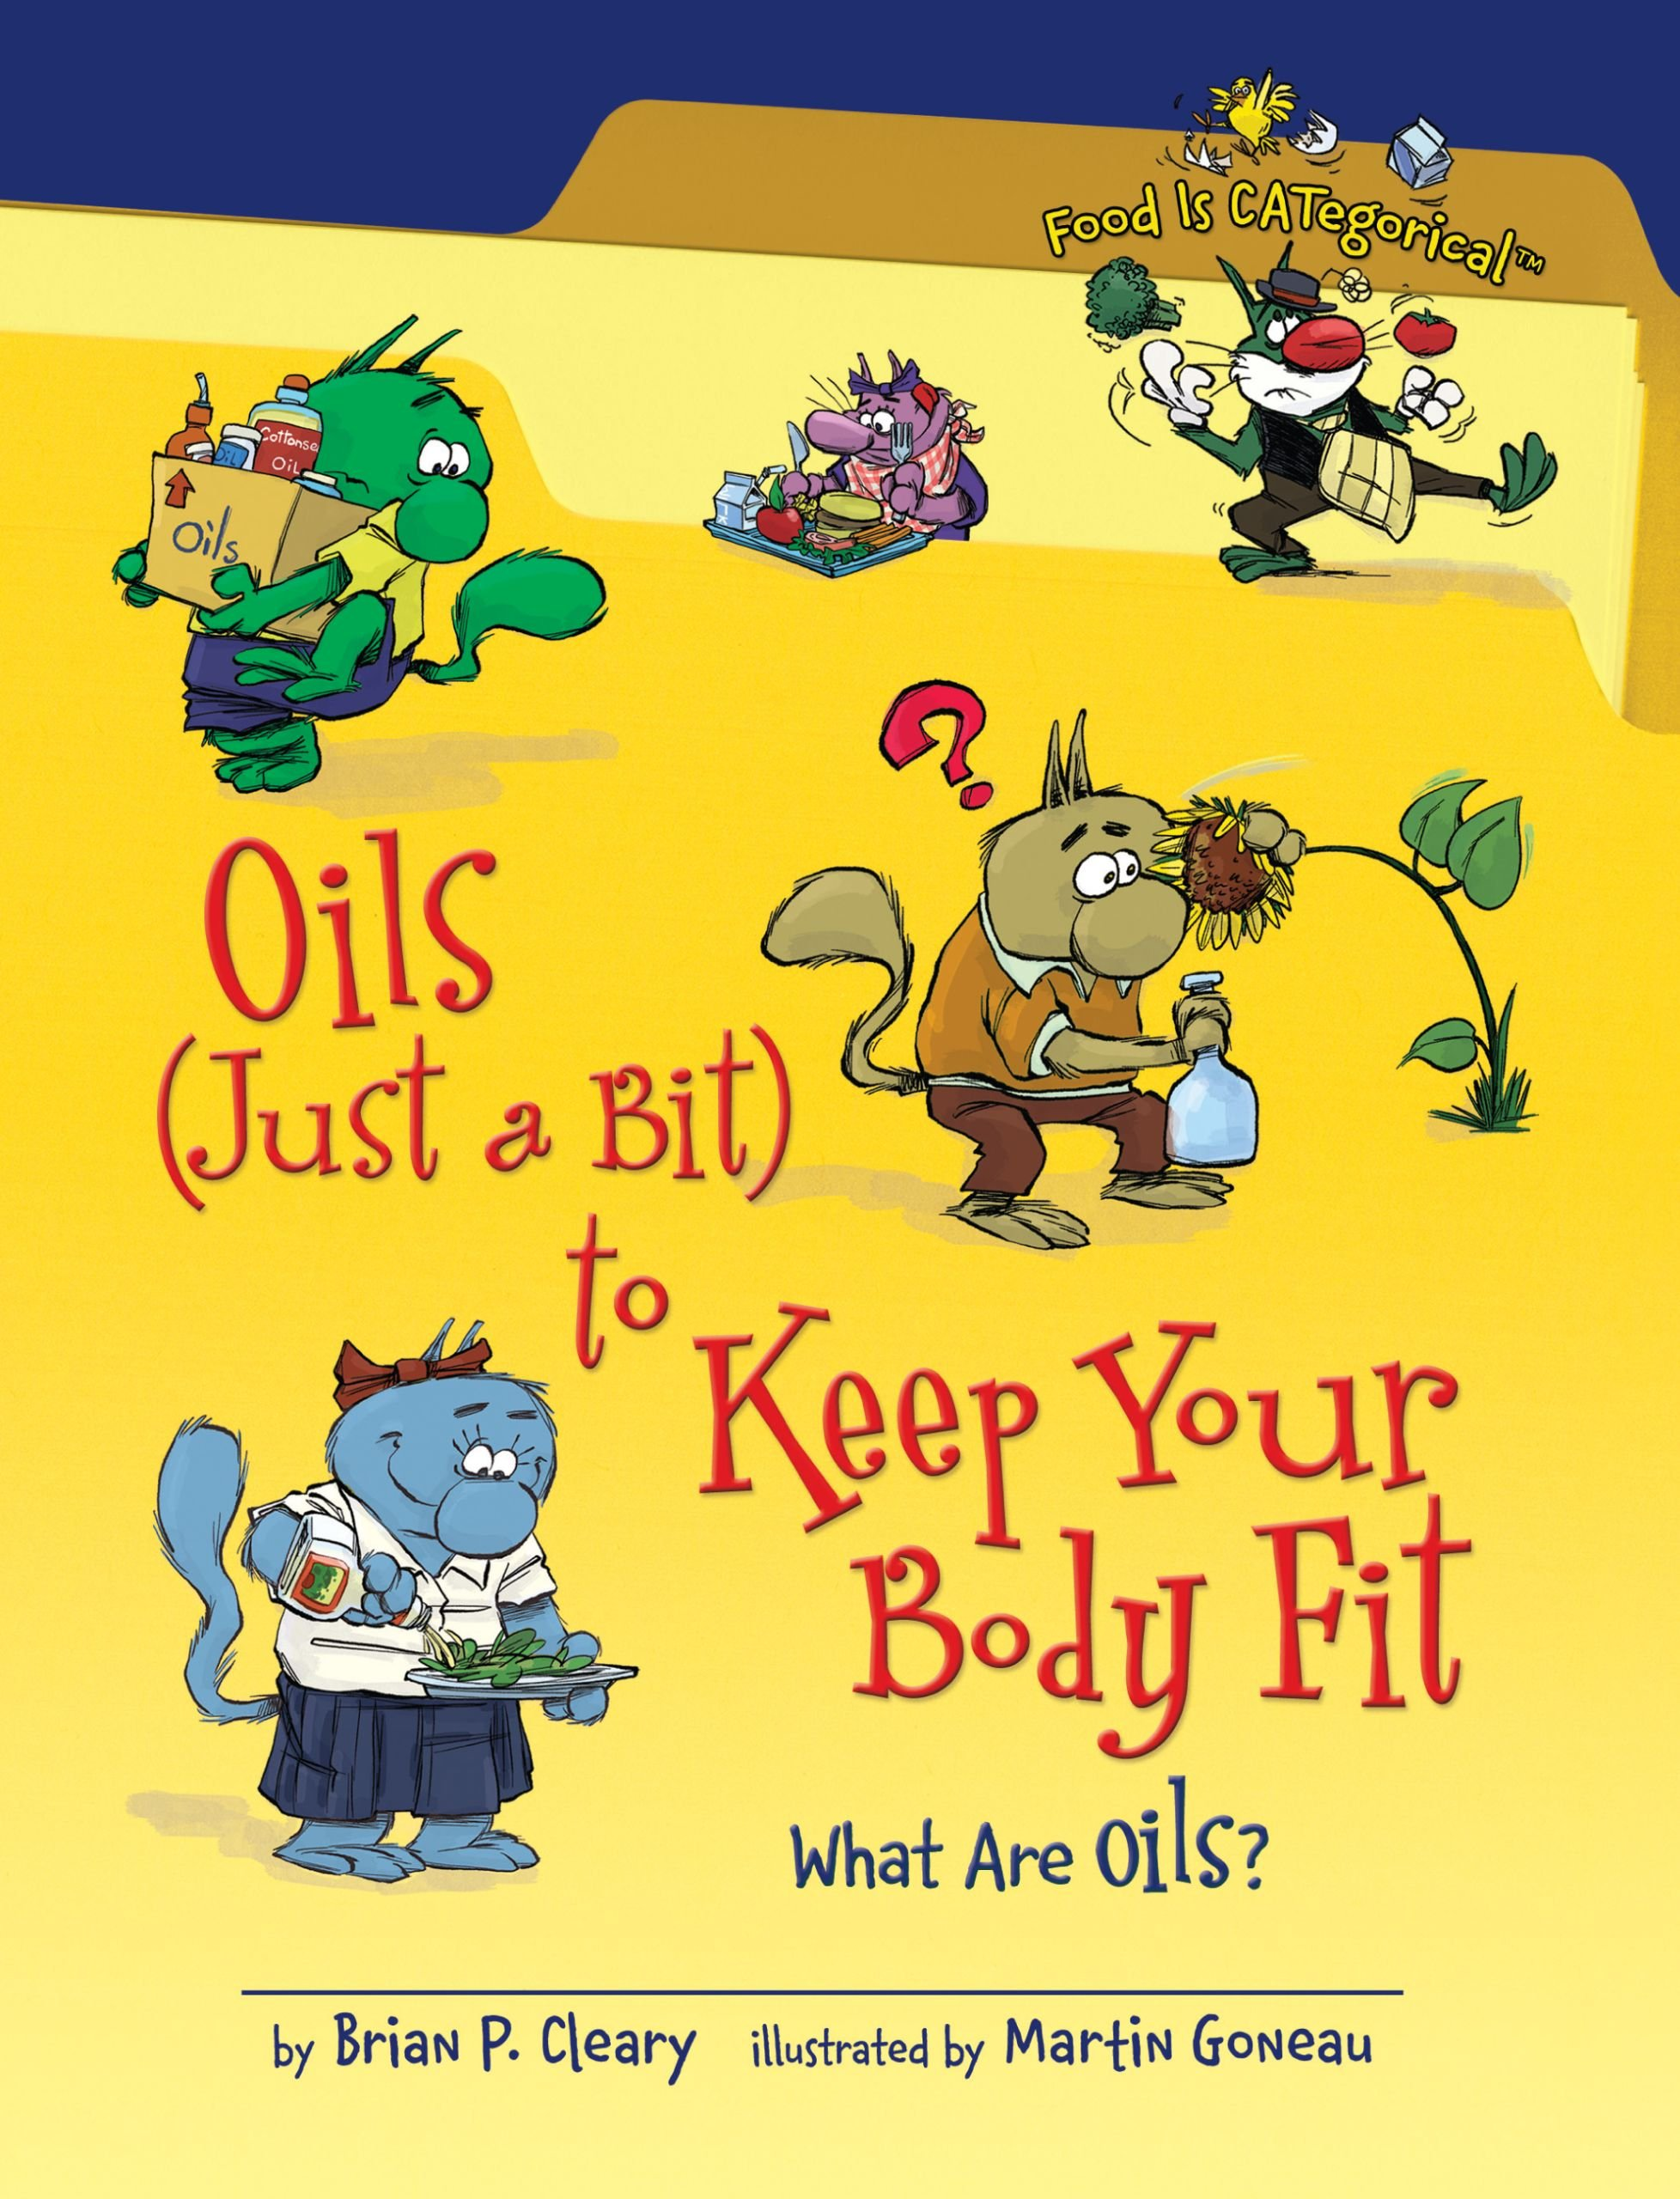 Oils Just a Bit to Keep Your Body Fit: What Are Oils? (Food Is Categorical)